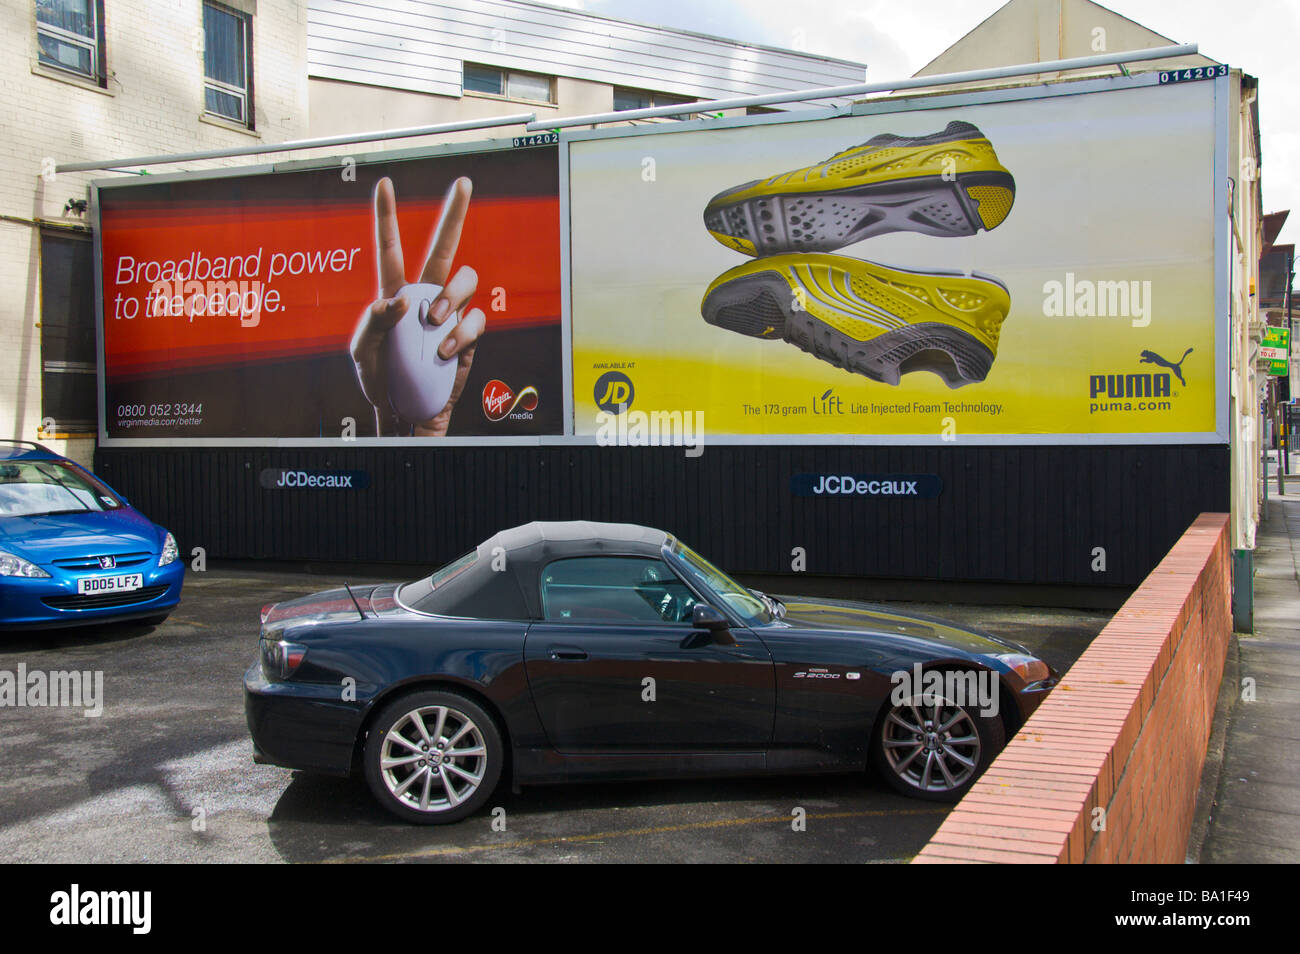 JCDecaux advertising billboards for Virgin Media broadband and Puma trainers on private car park in Cardiff South - Stock Image